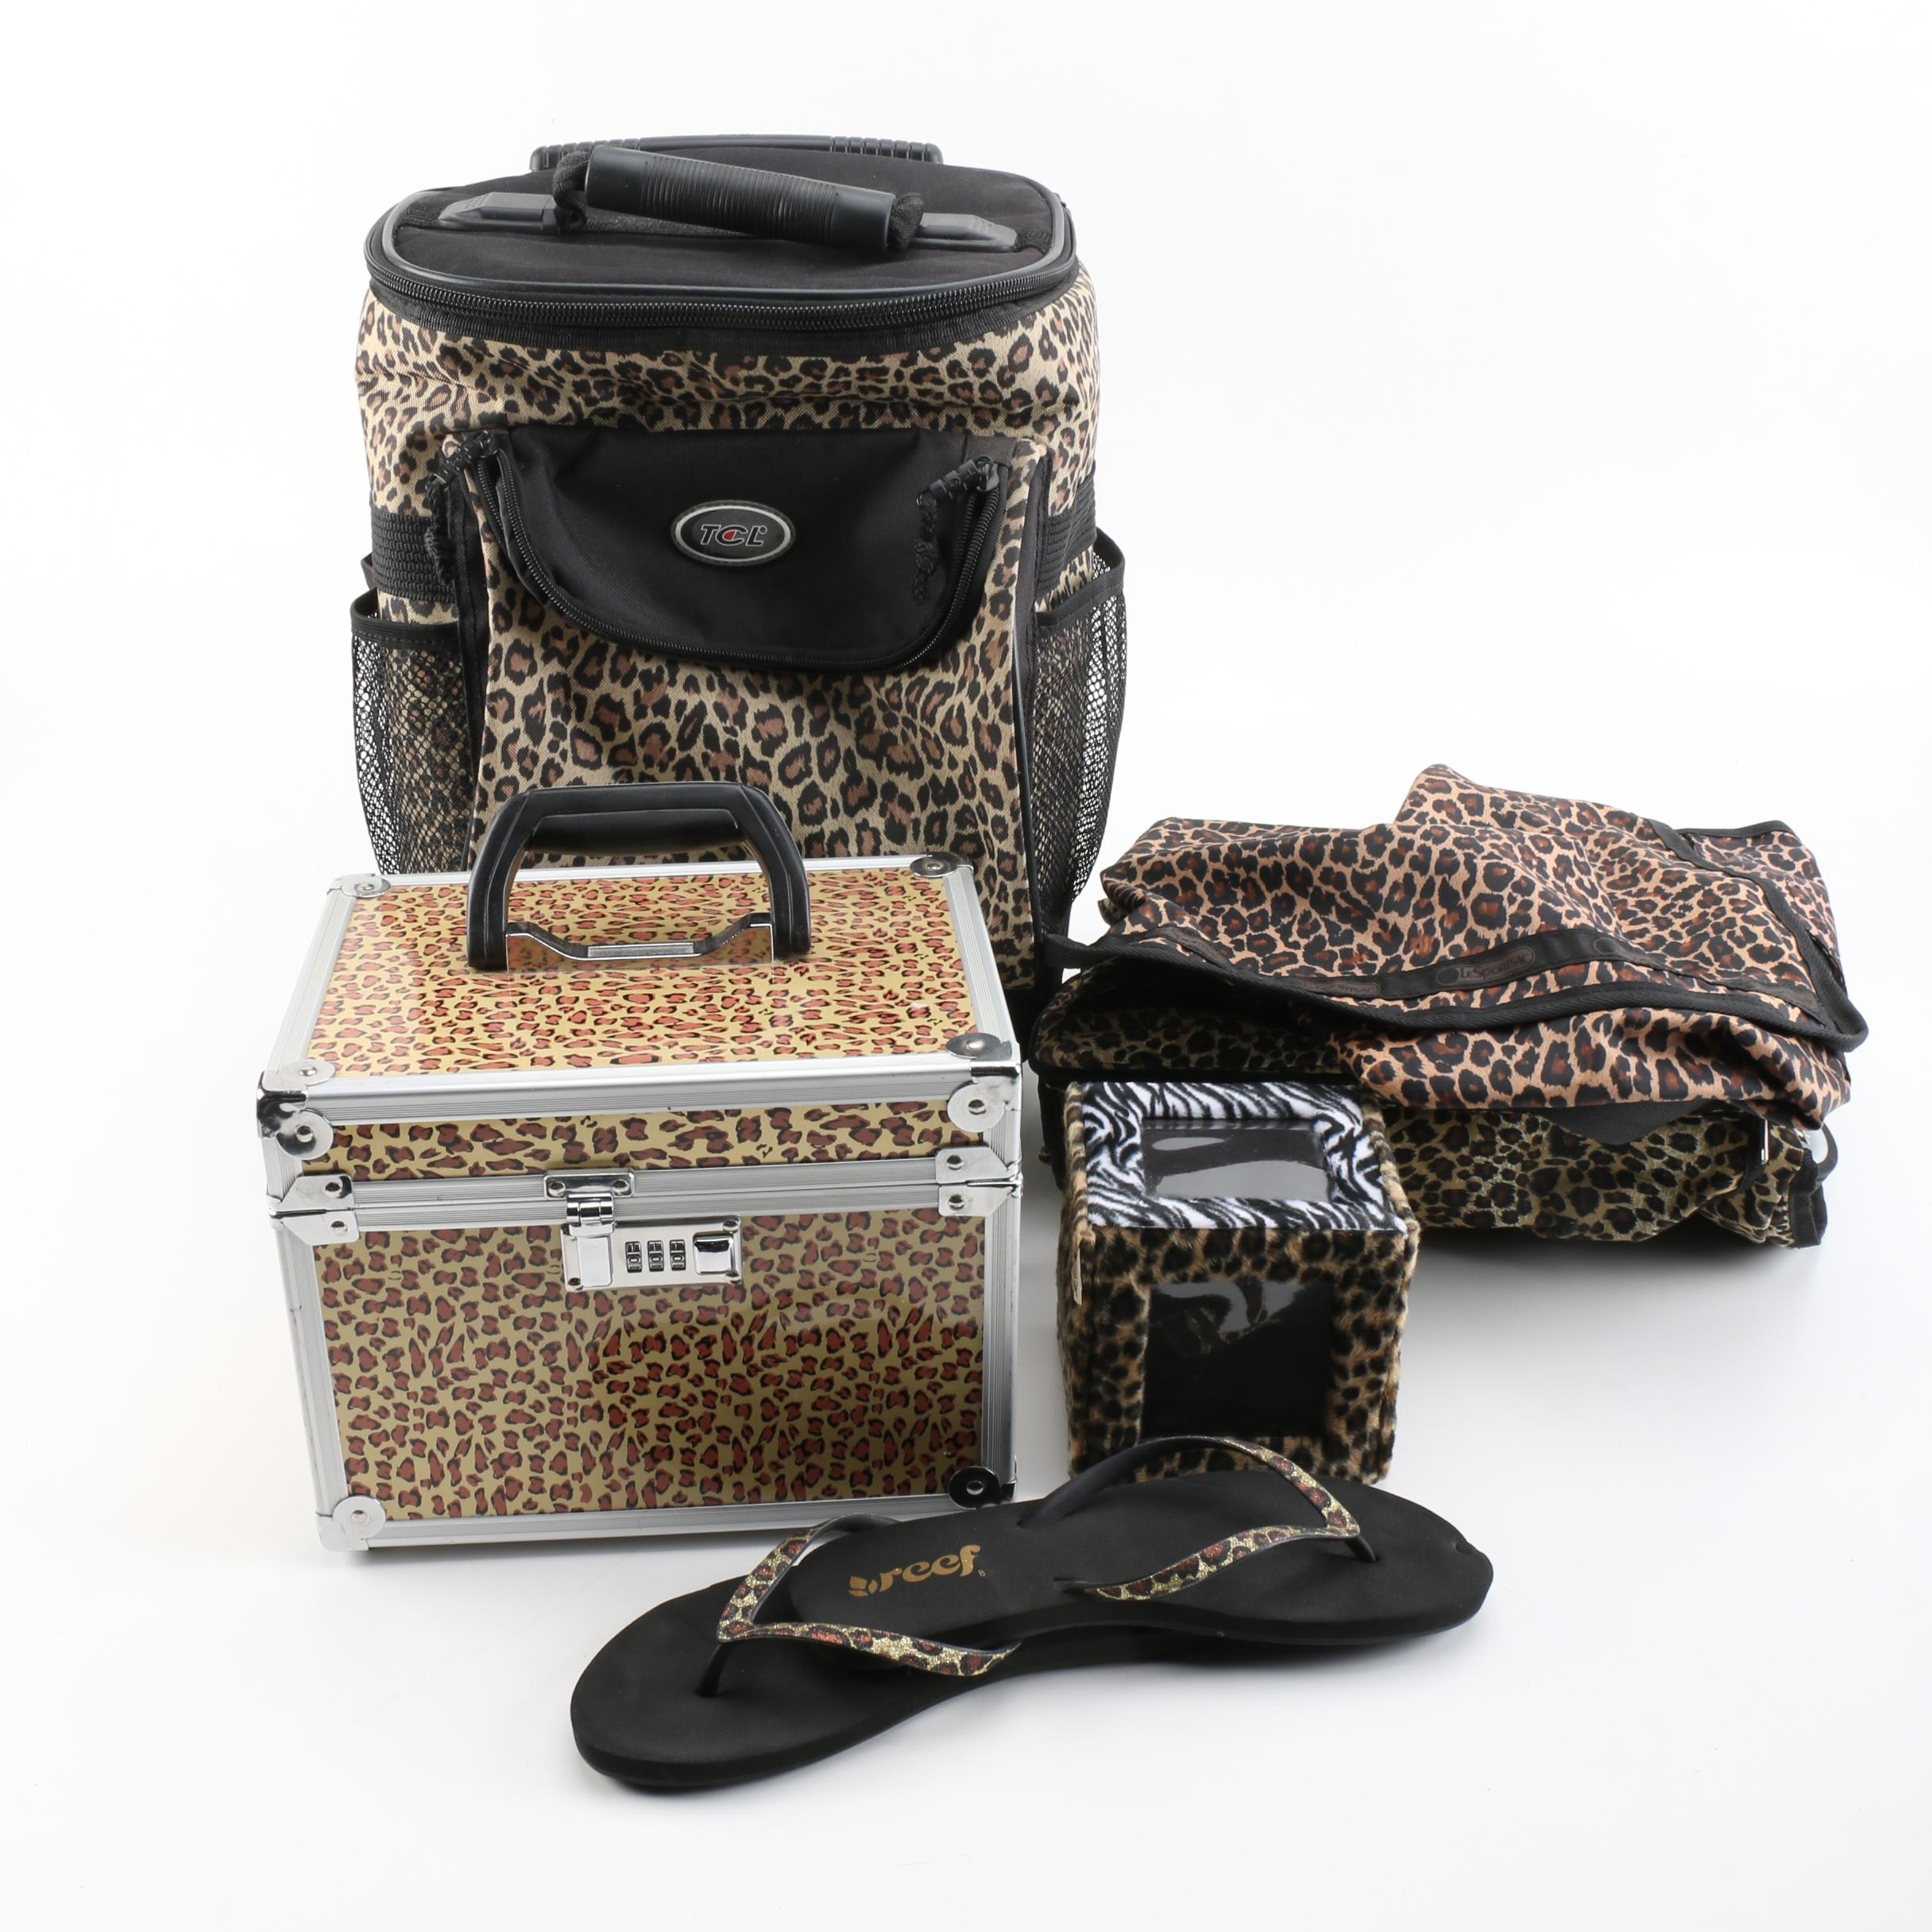 Leopard Print Luggage and Sandals Including LeSportsac